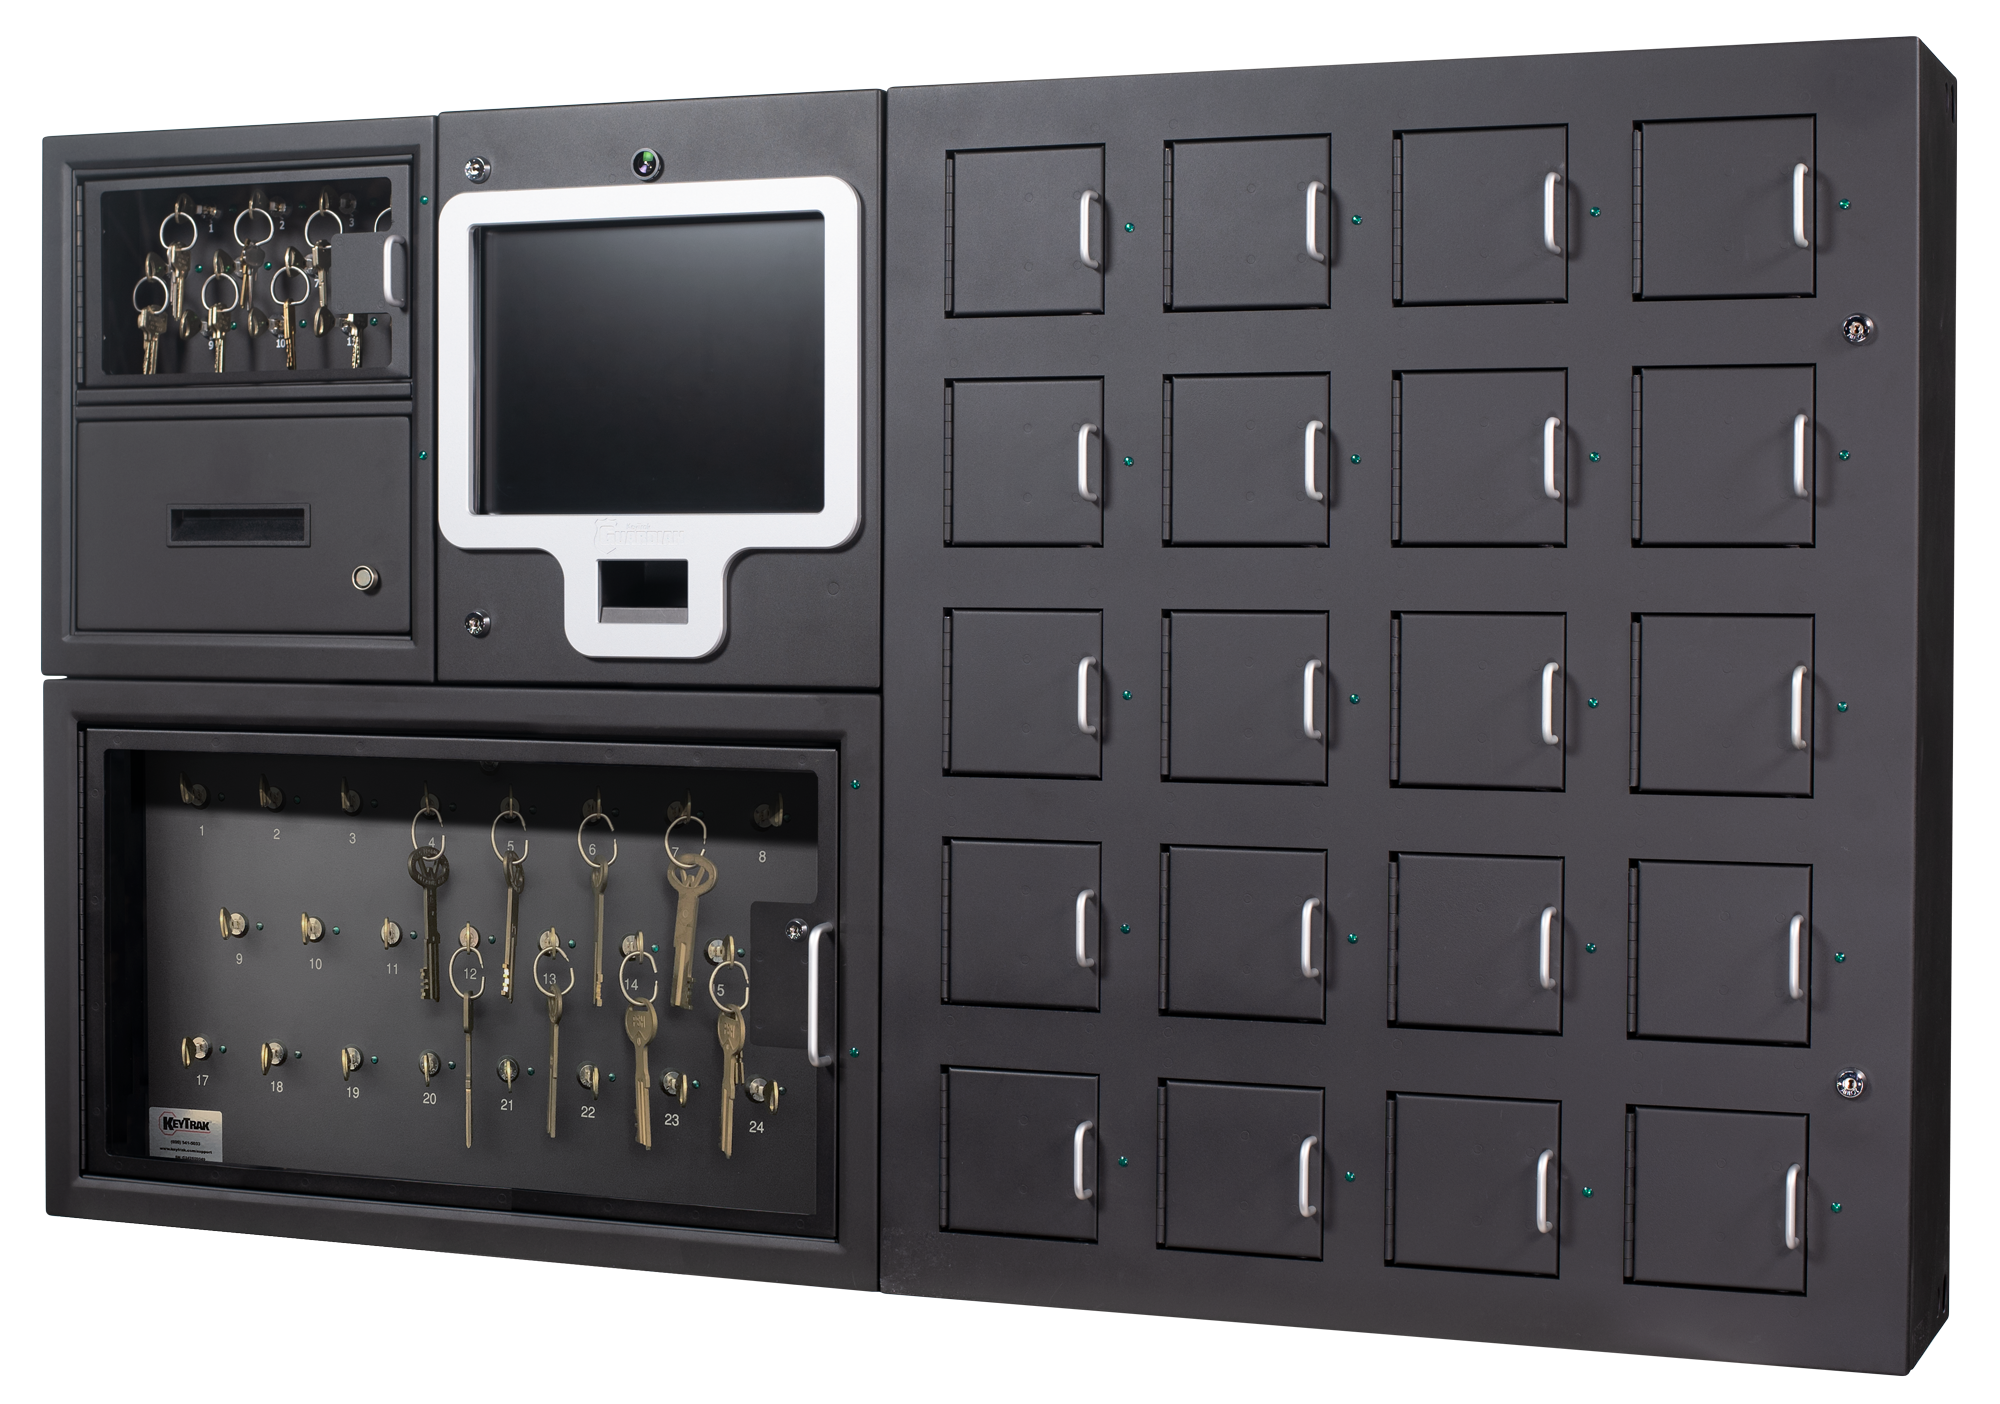 Guardian VSP with low-density key panel